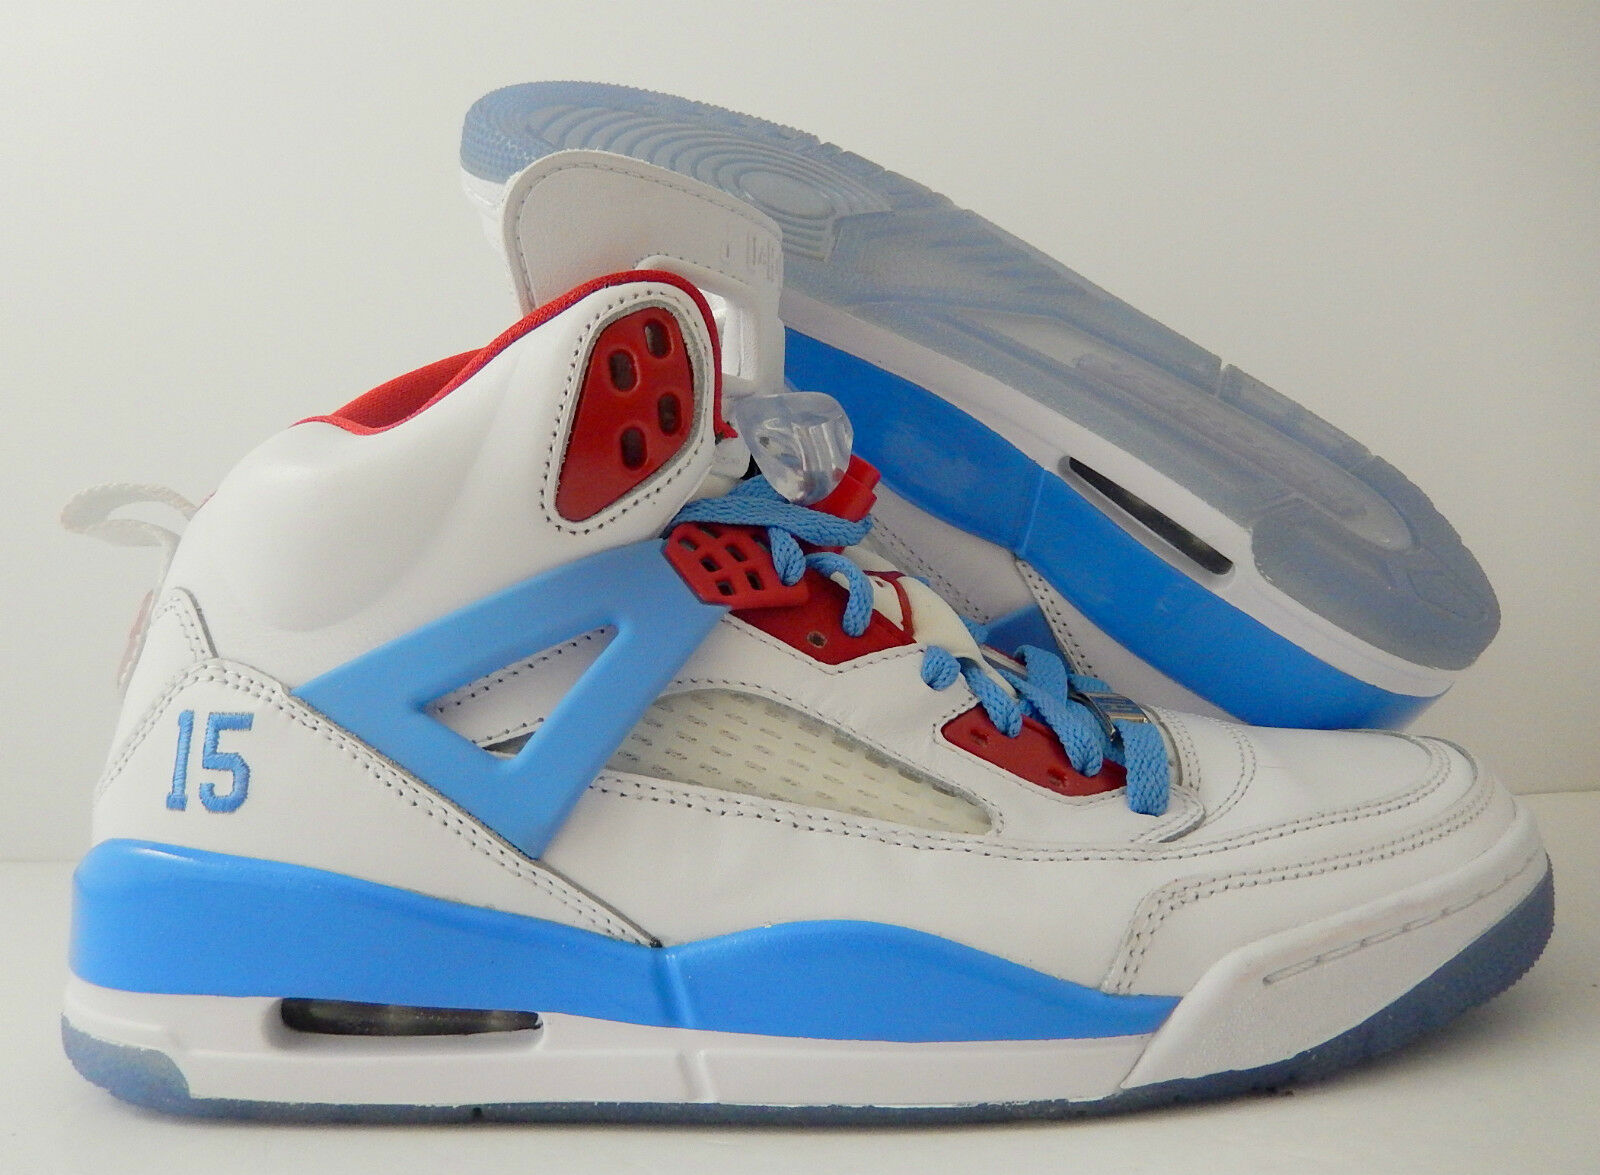 687d28fa586ca3 NIKE AIR JORDAN SPIZIKE WHITE-BABY blueE-RED 10.5  605241-993  iD SZ  nqtlli1718-Athletic Shoes